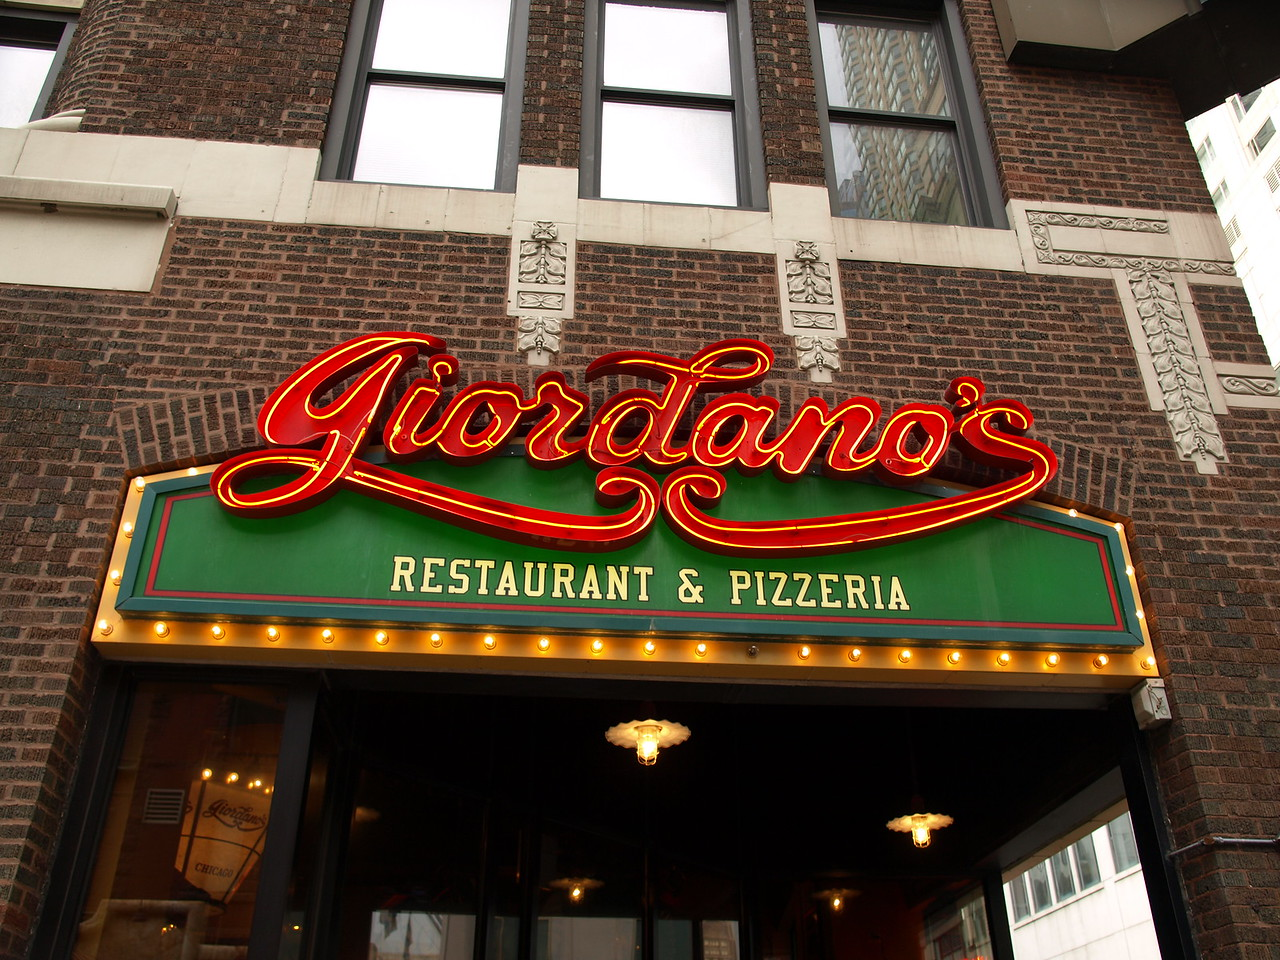 Giordano's Yumm! Great Deep Dish Pizza!